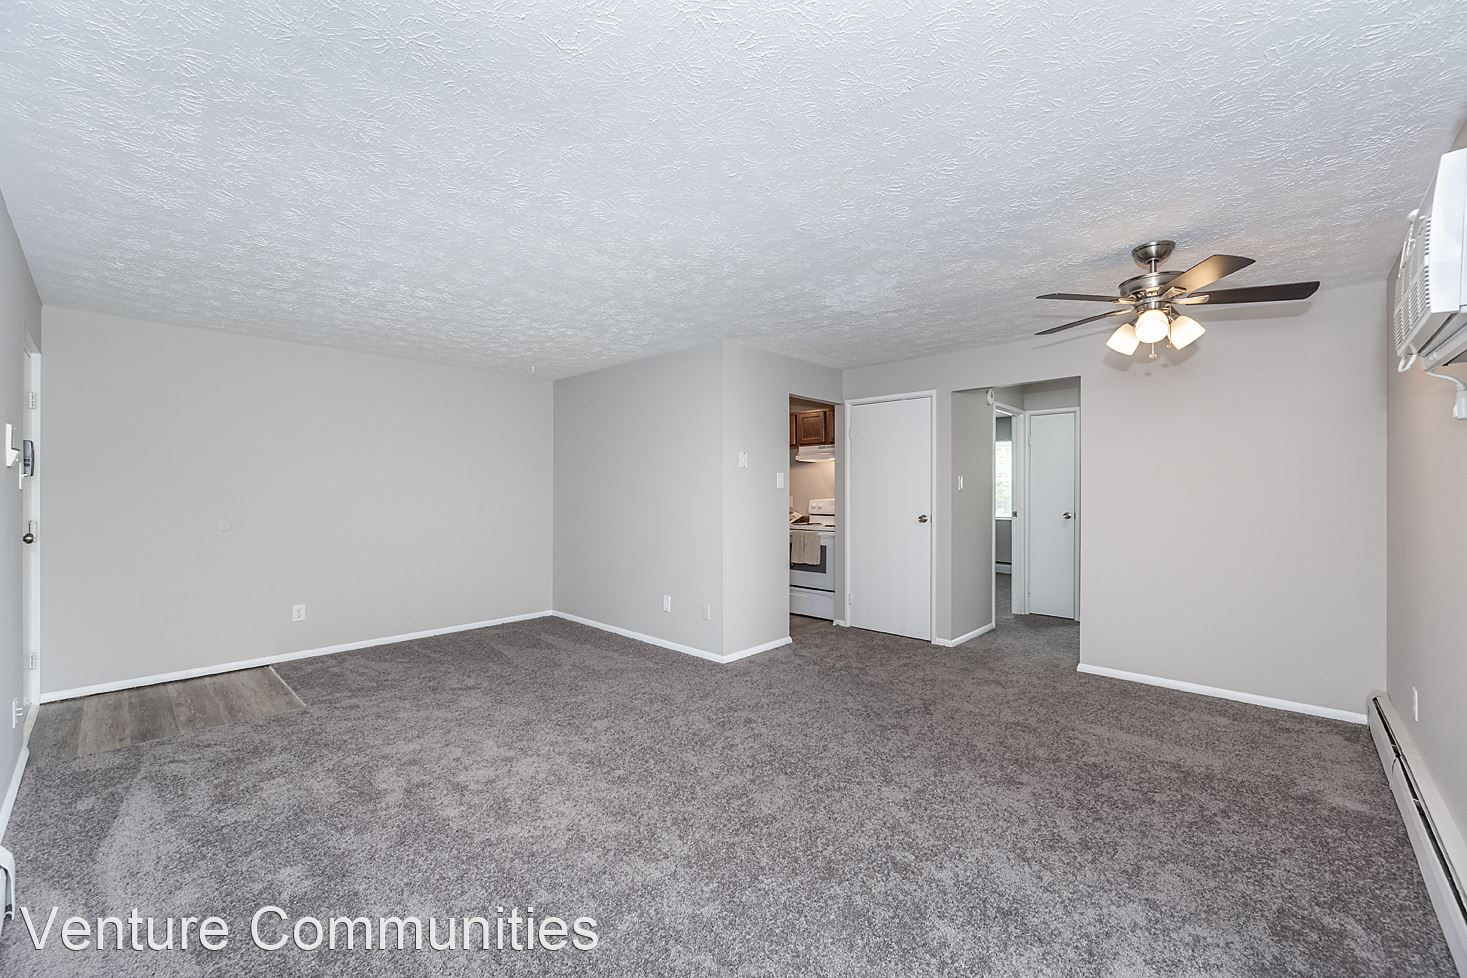 3208-3240 Midway Avenue - 950USD / month